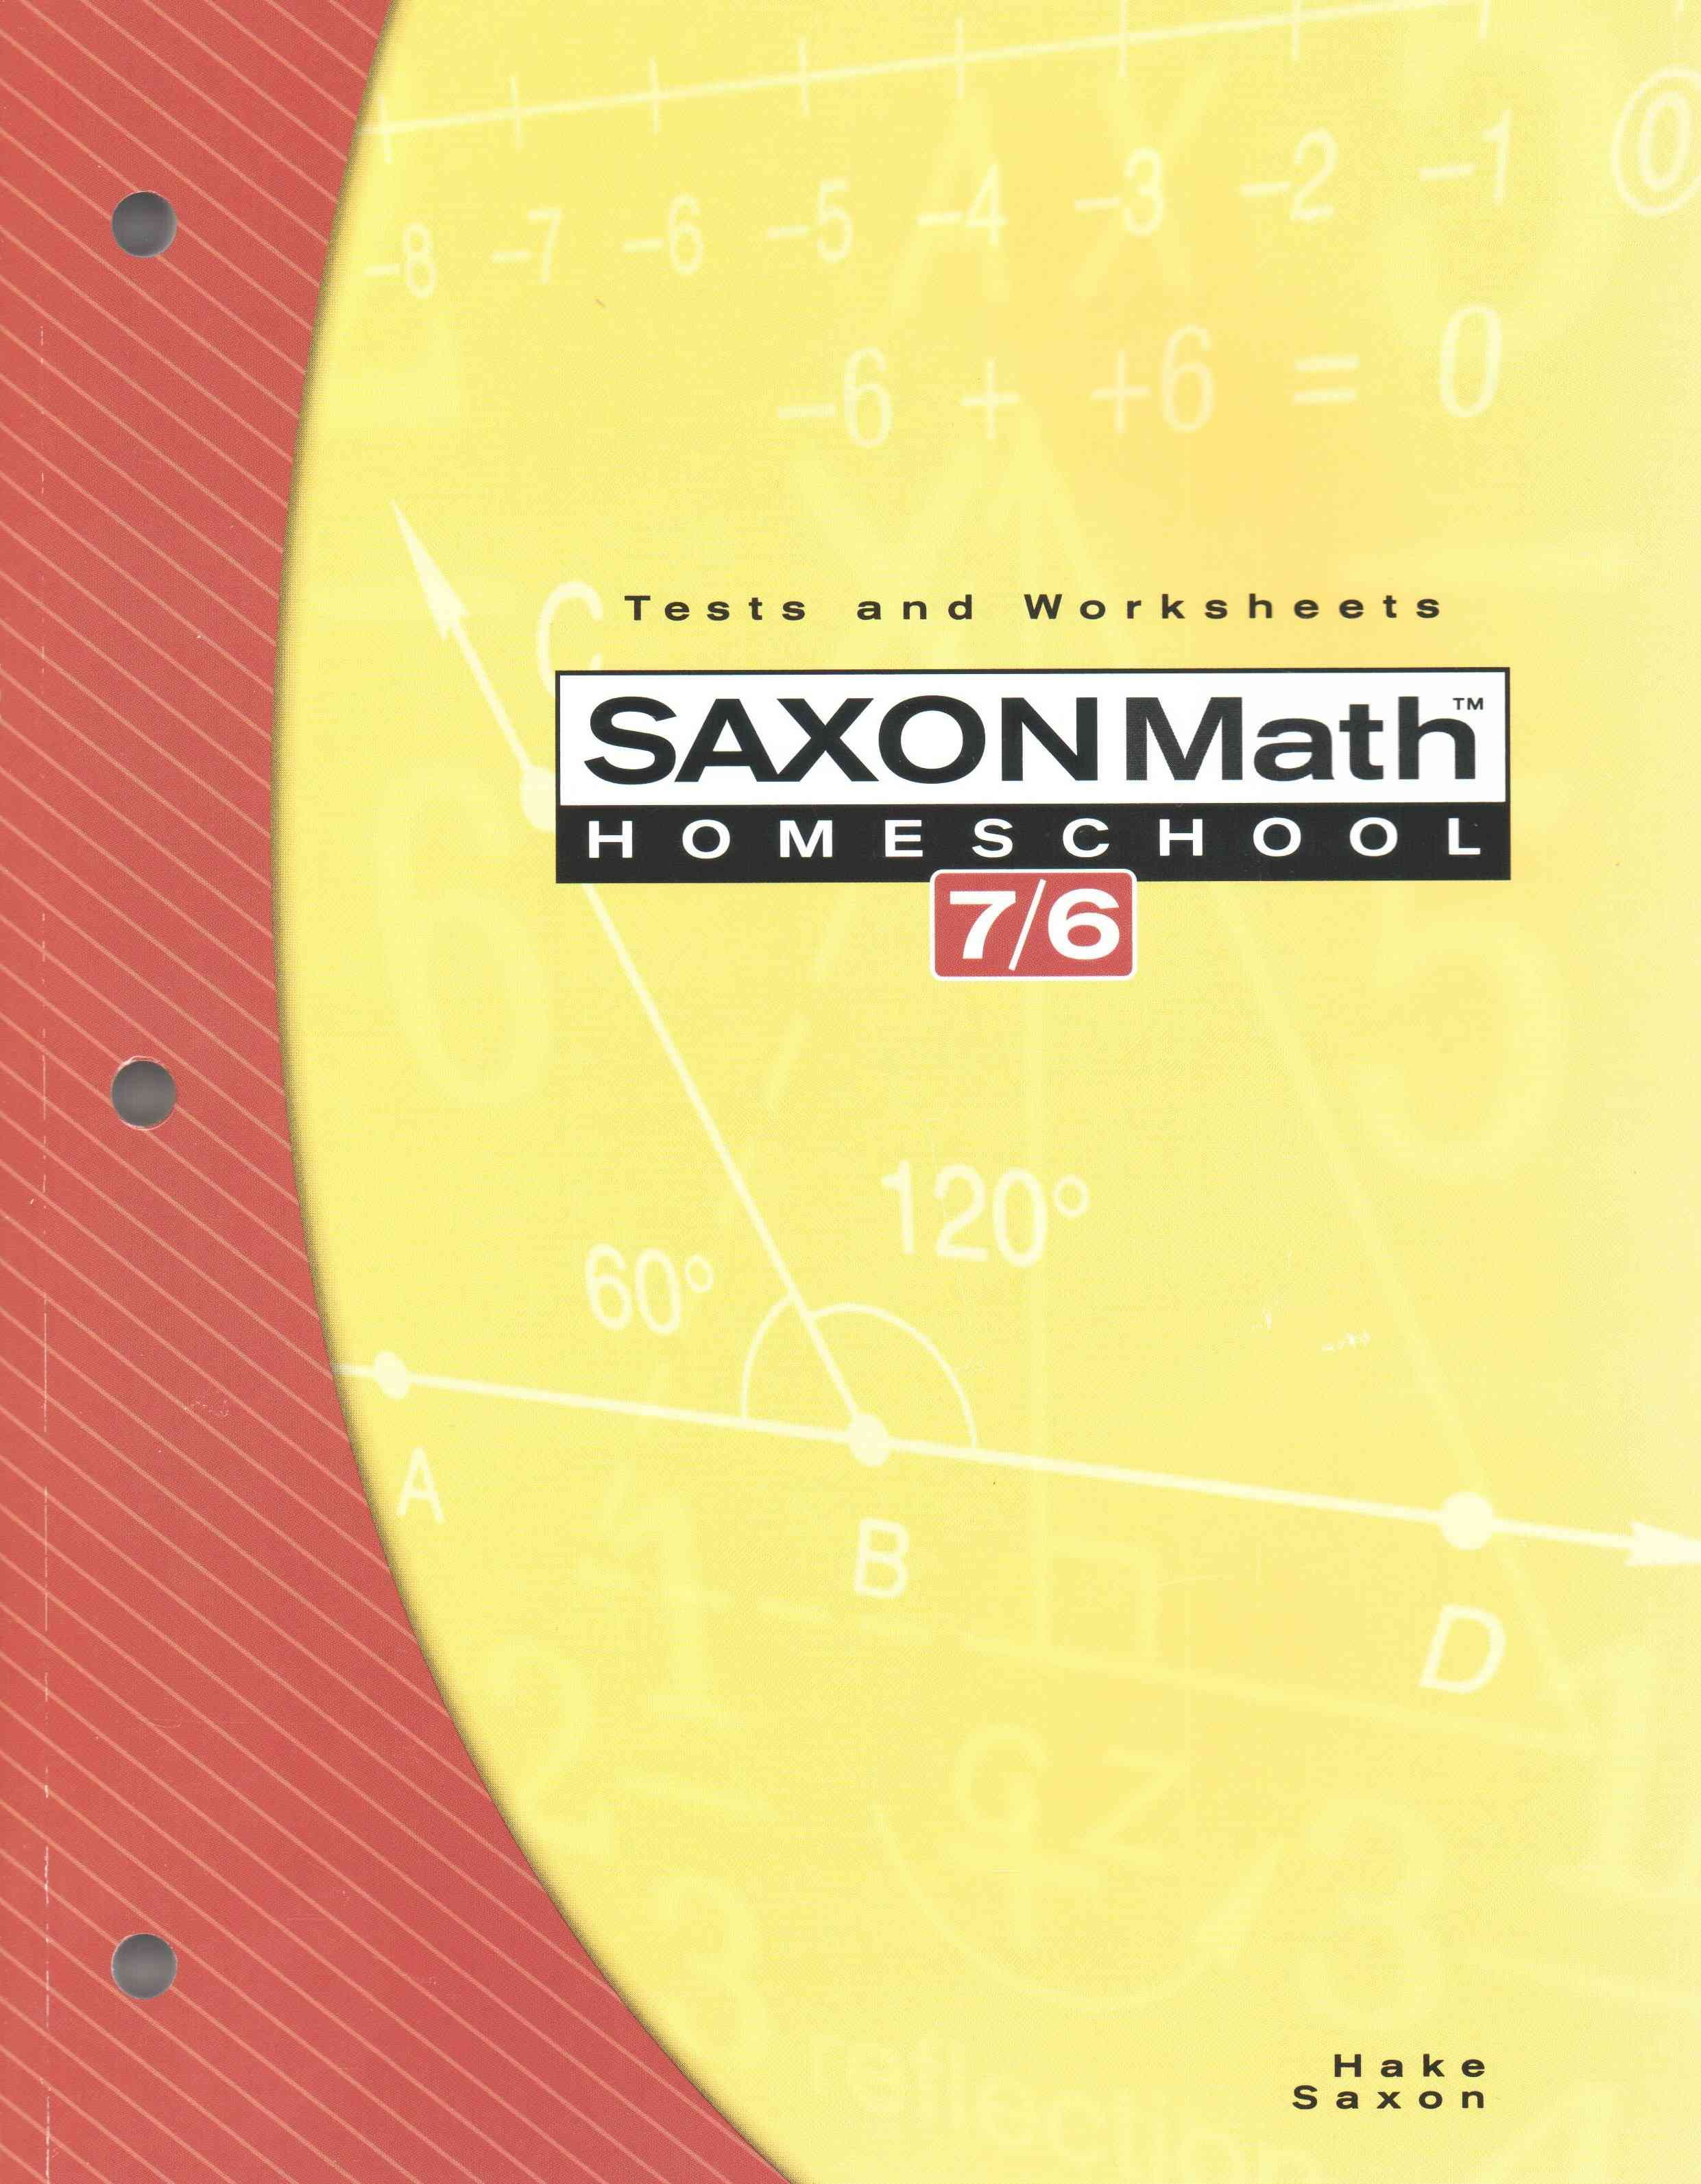 Saxon Math 7 6 Homeschool Tests And Worksheets